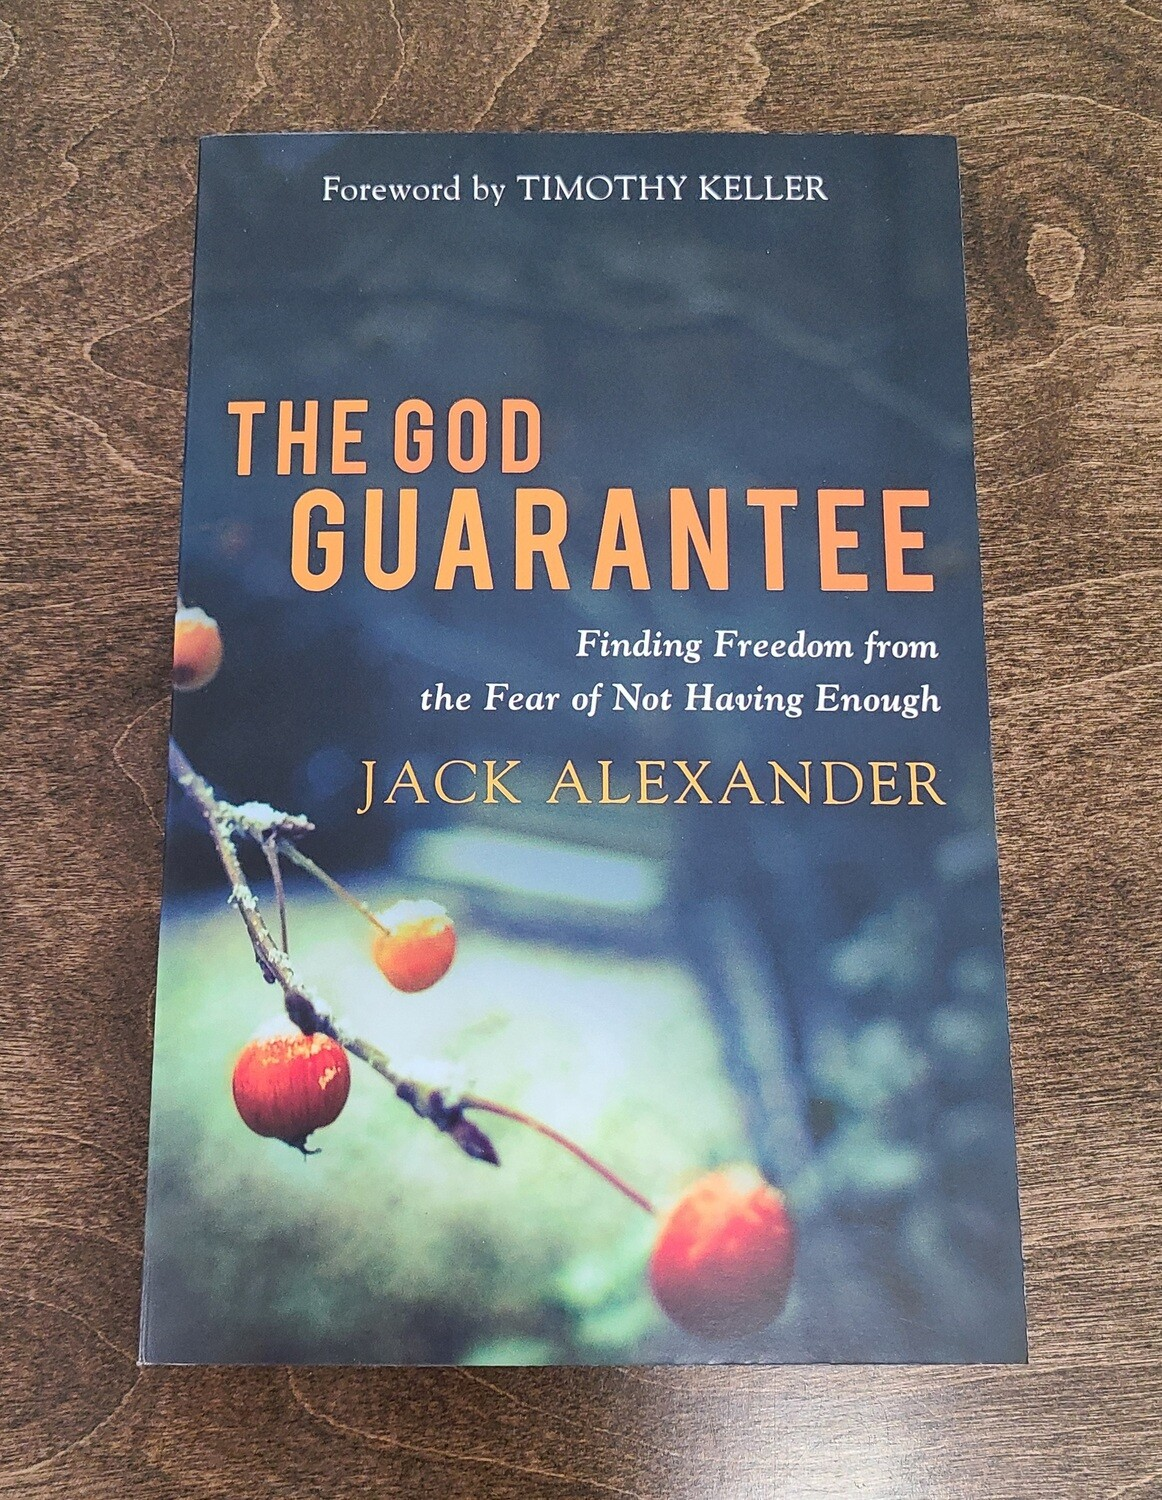 The God Guarantee by Jack Alexander